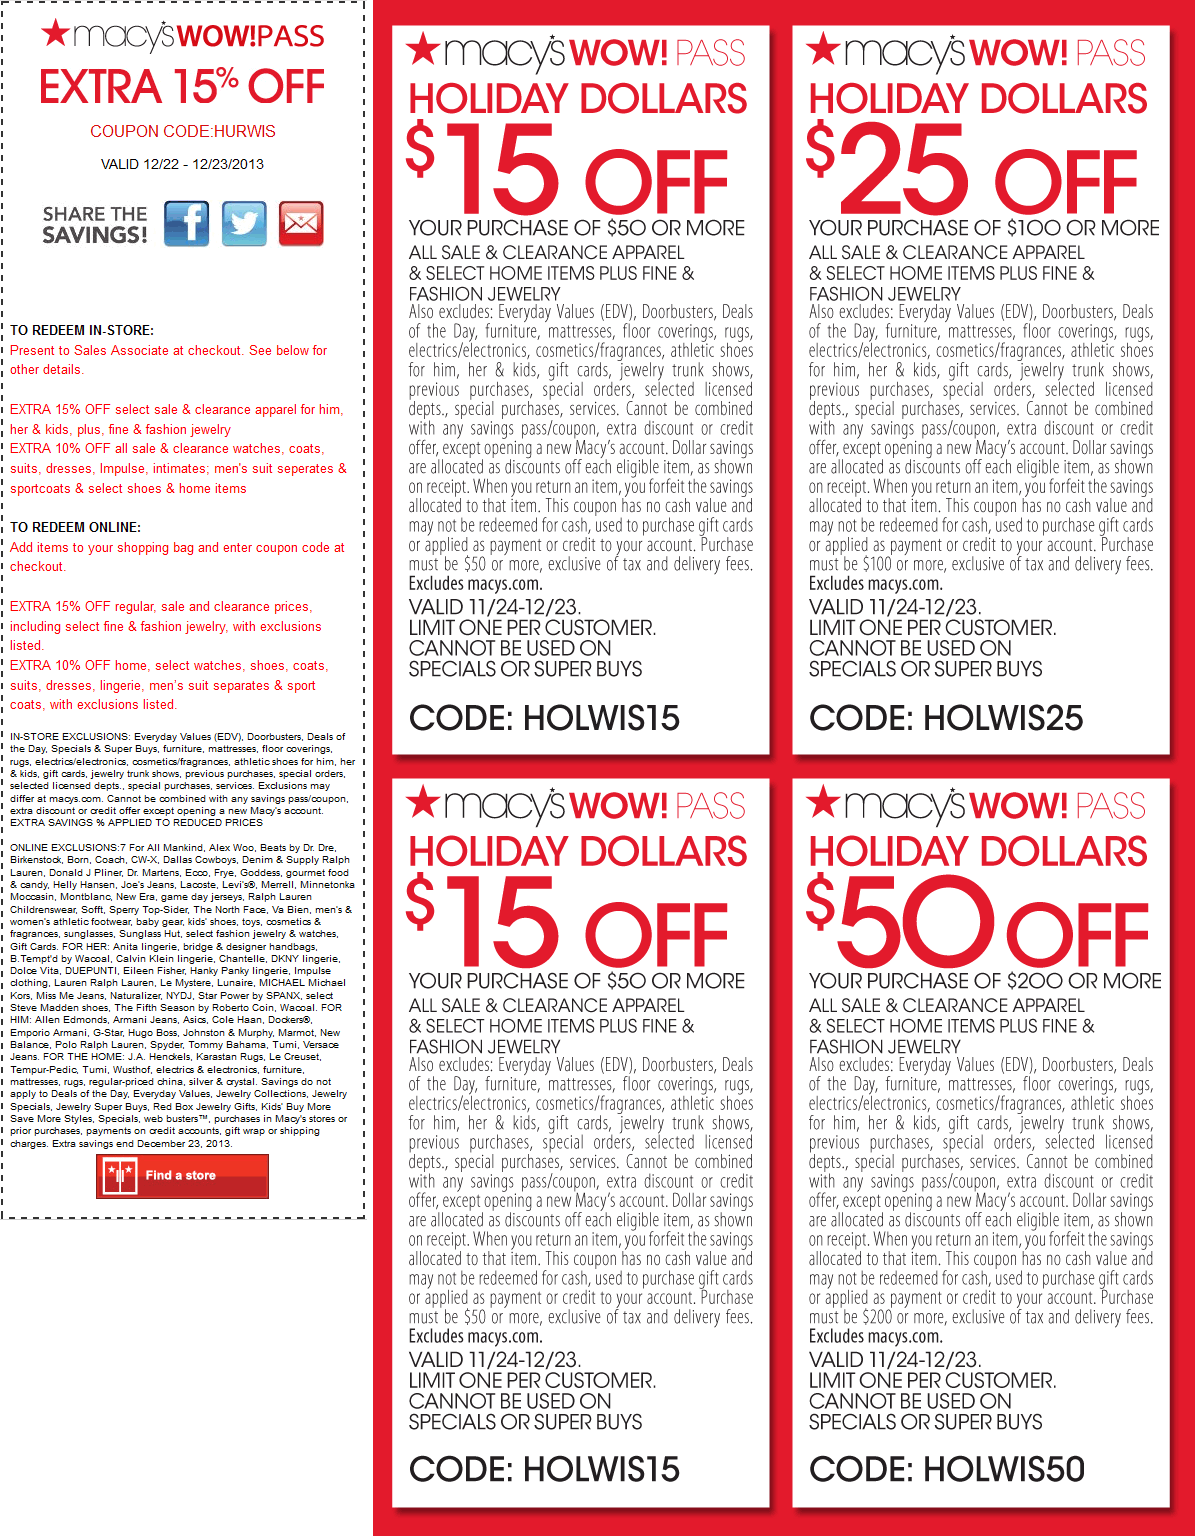 Coupon Alerts. Never miss a great Macy's coupon and get our best coupons every week!